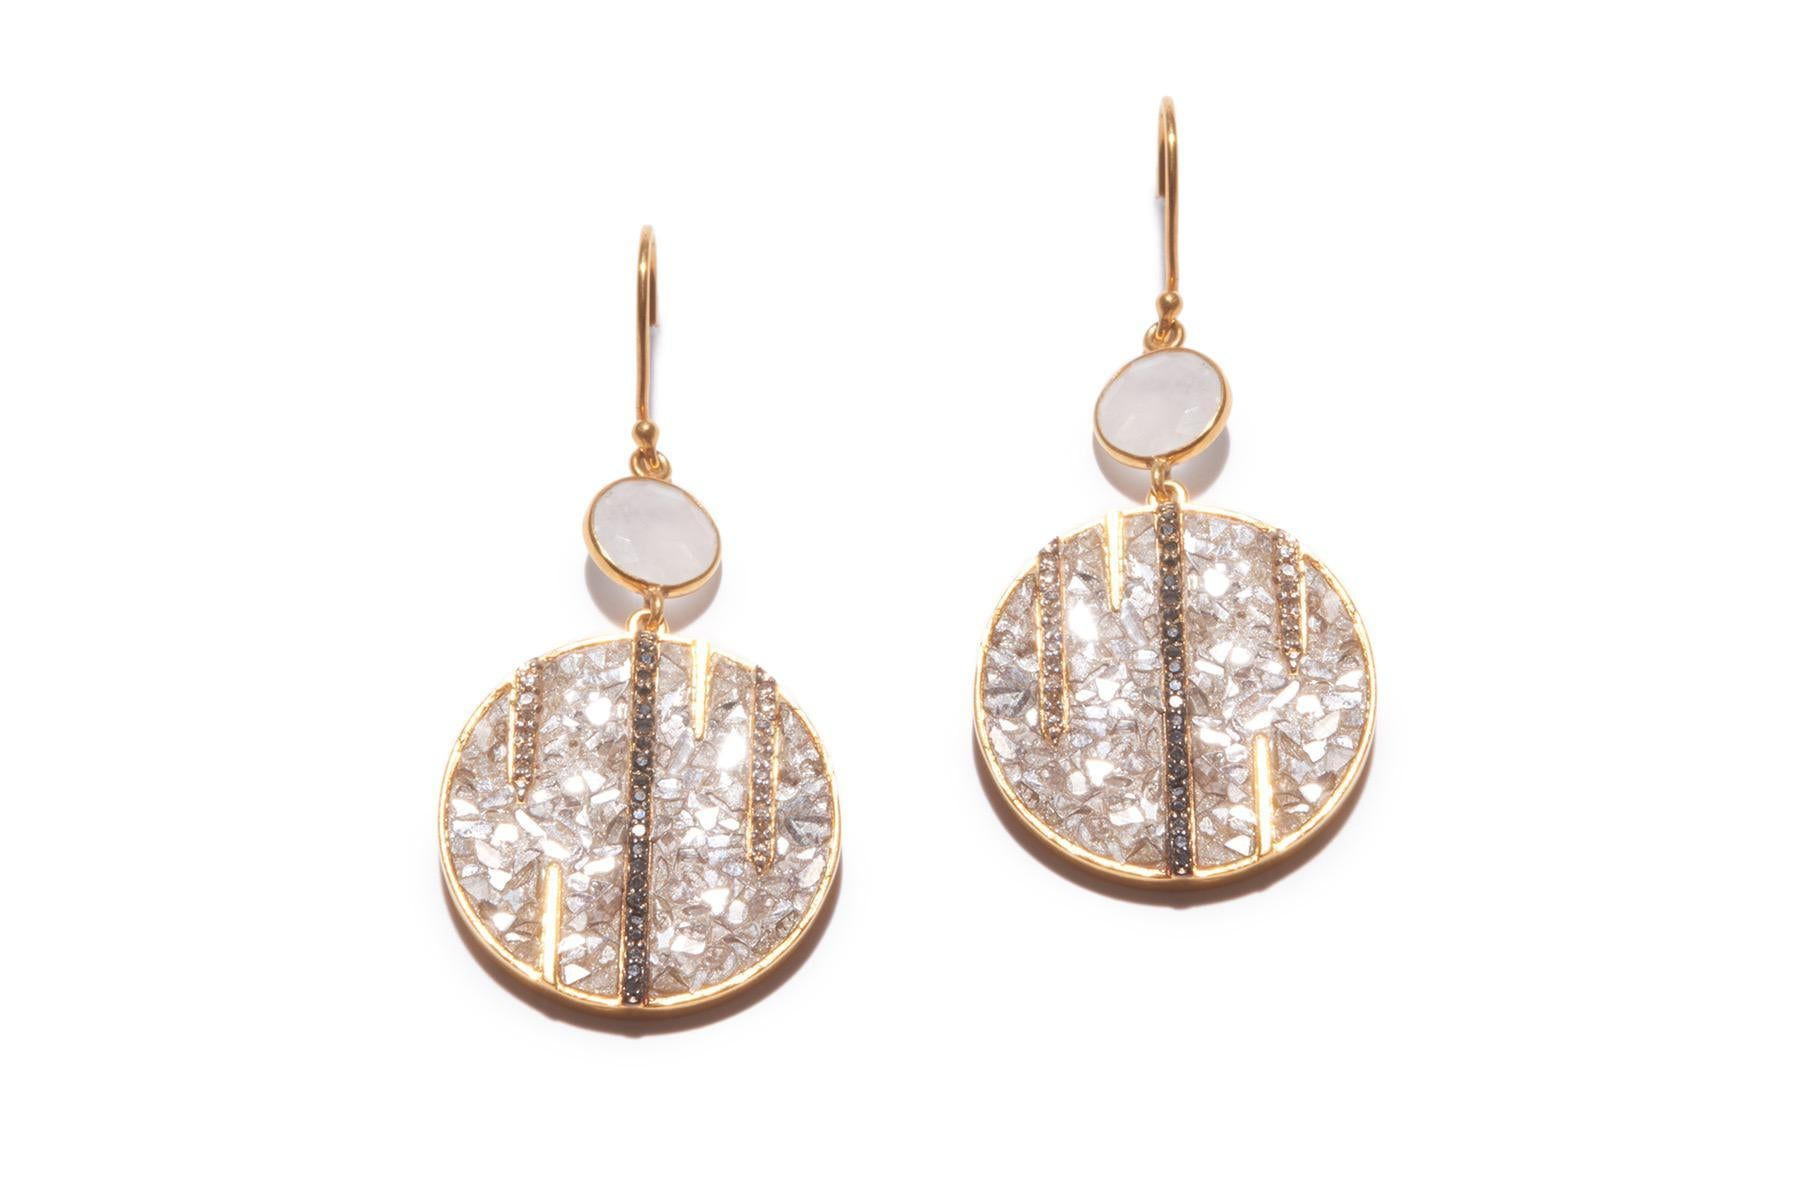 RIFFA EARRINGS YG